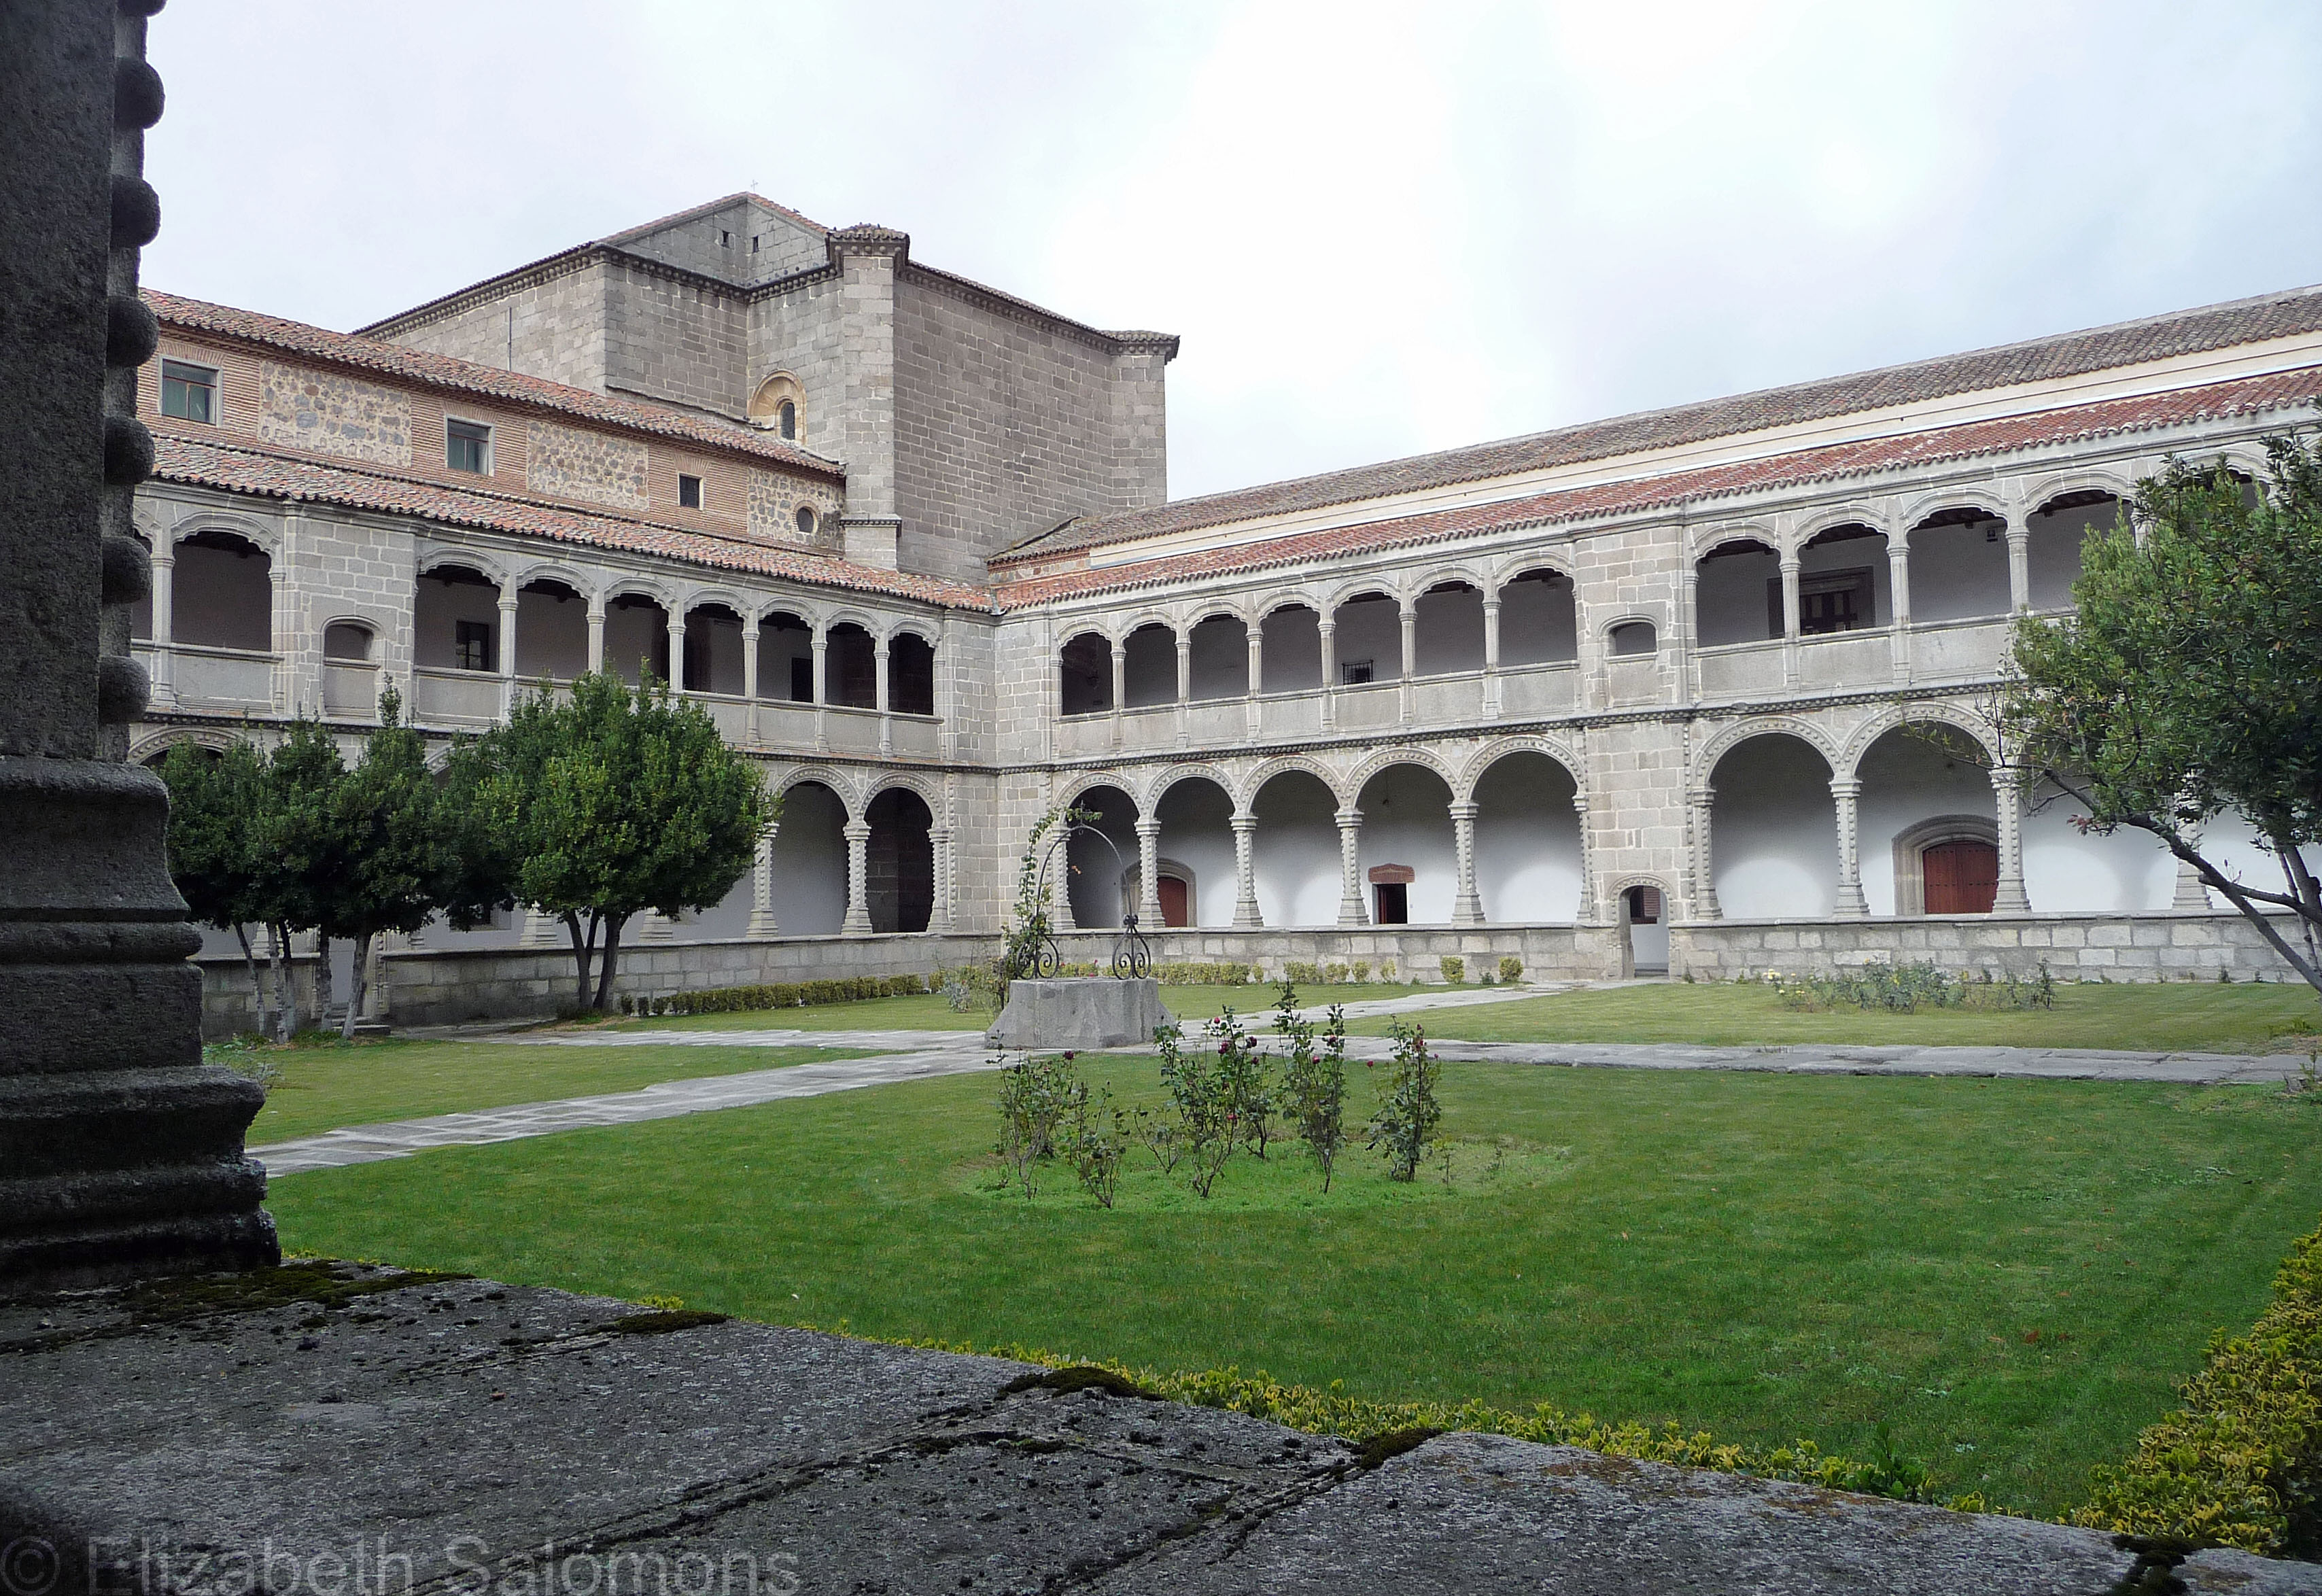 Cloister of the Monarchs